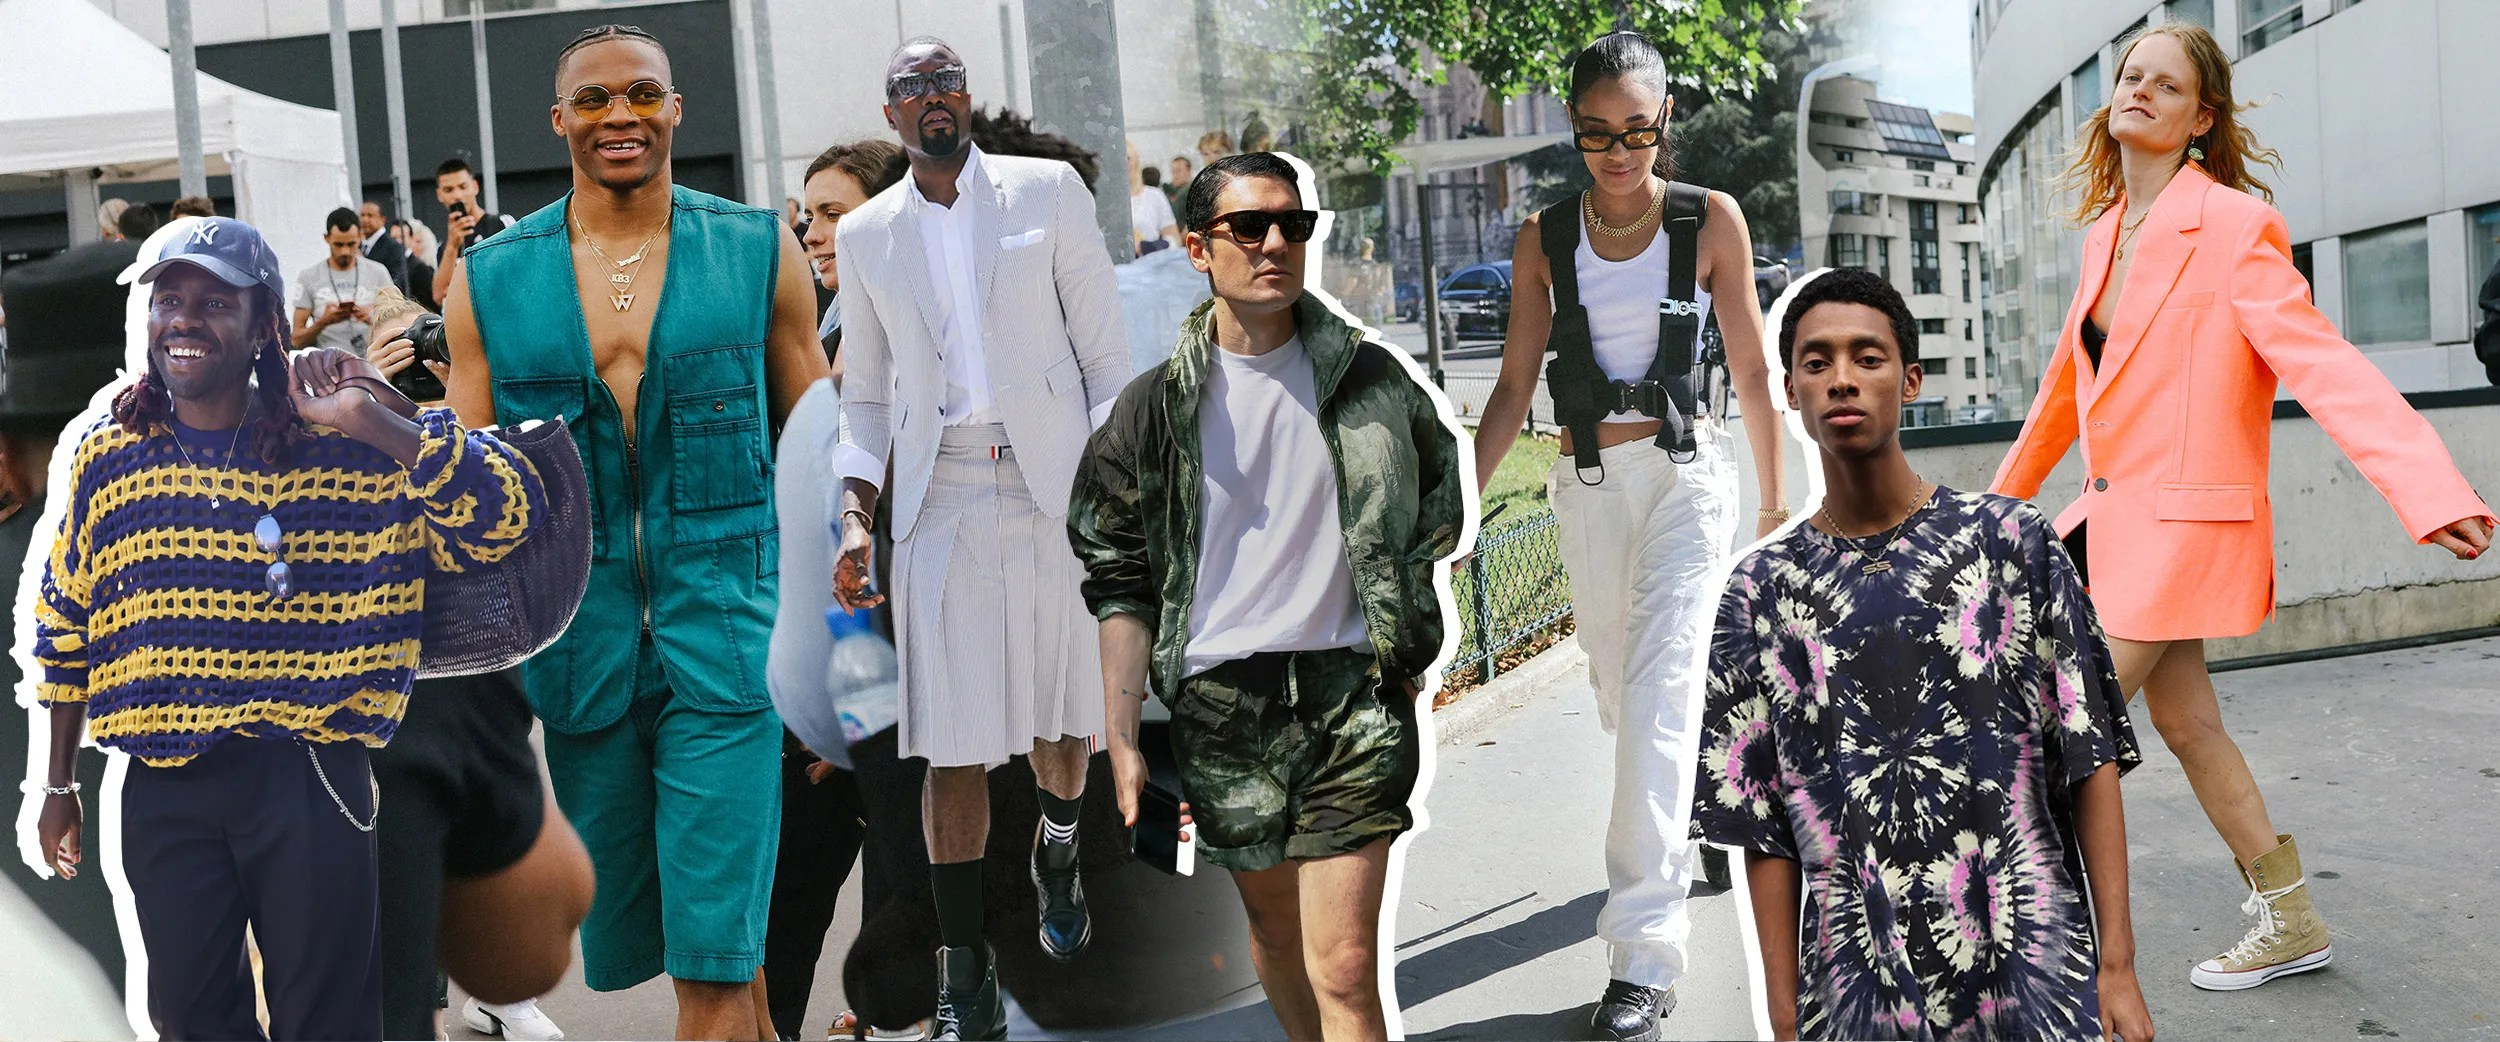 The 9 Biggest Street Style Trends At The Spring 2020 Menswear